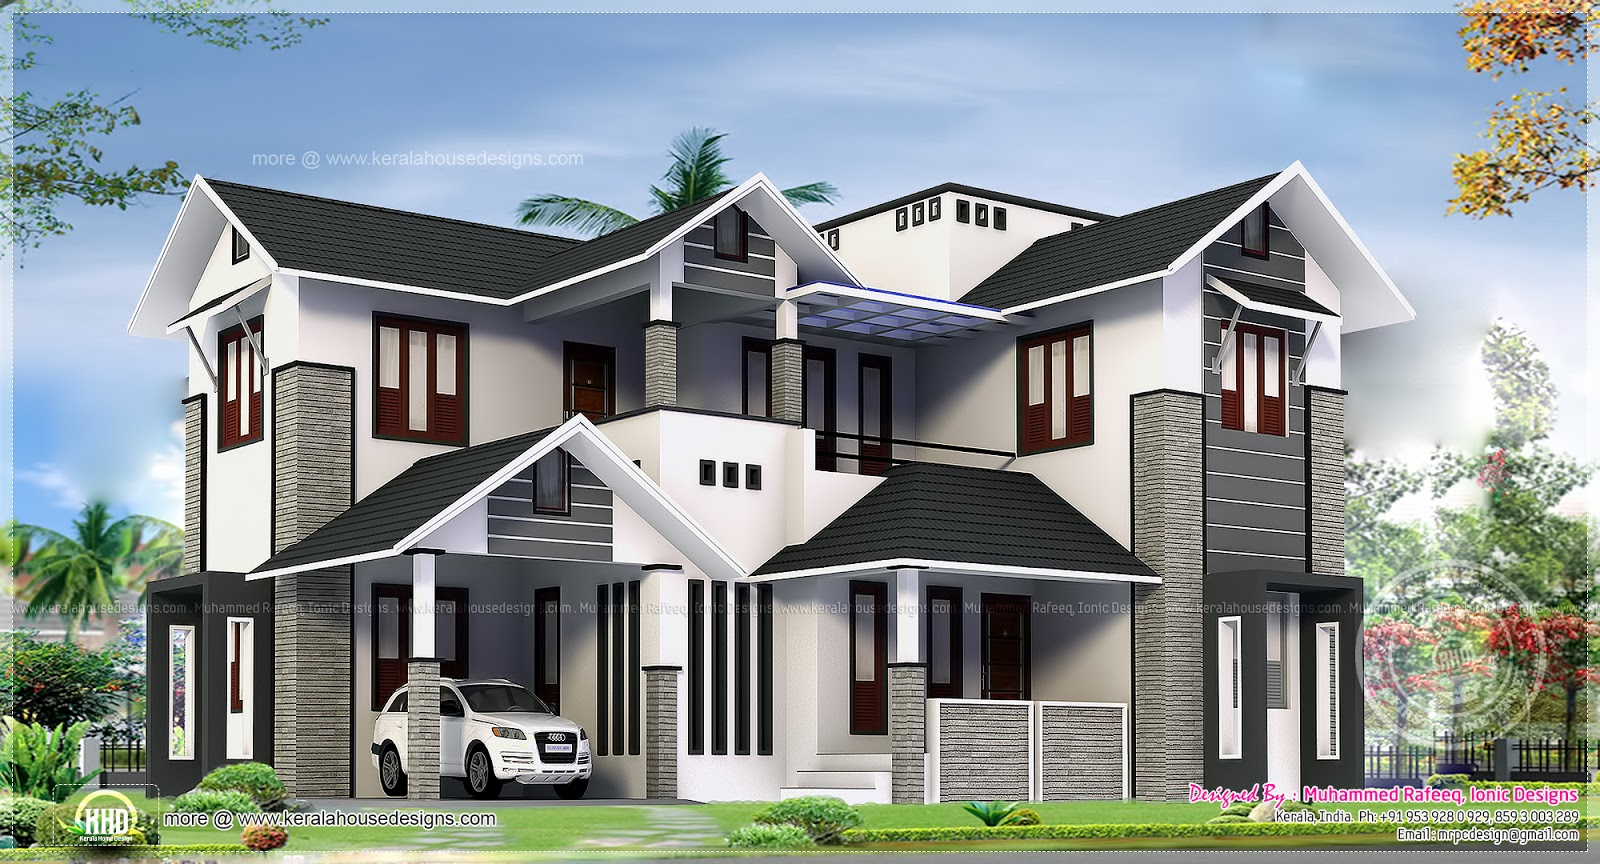 8 Bedroom House Floor Plans 2329 Square Feet Feel Big House Exterior Kerala Home